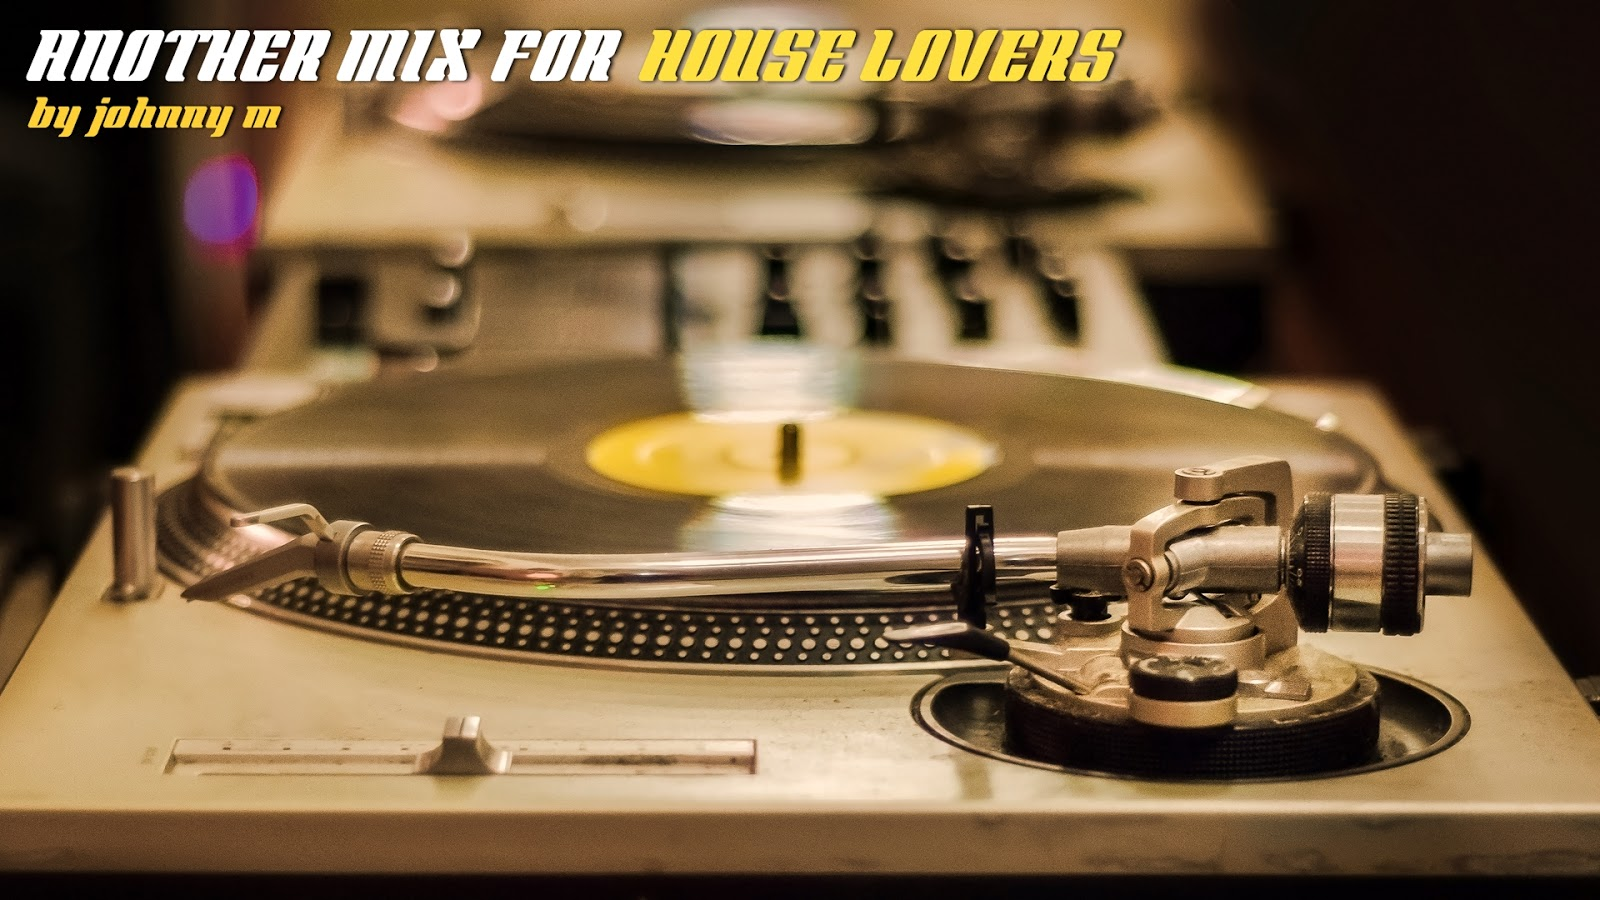 Another mix for house lovers house music set johnny m for House music lovers